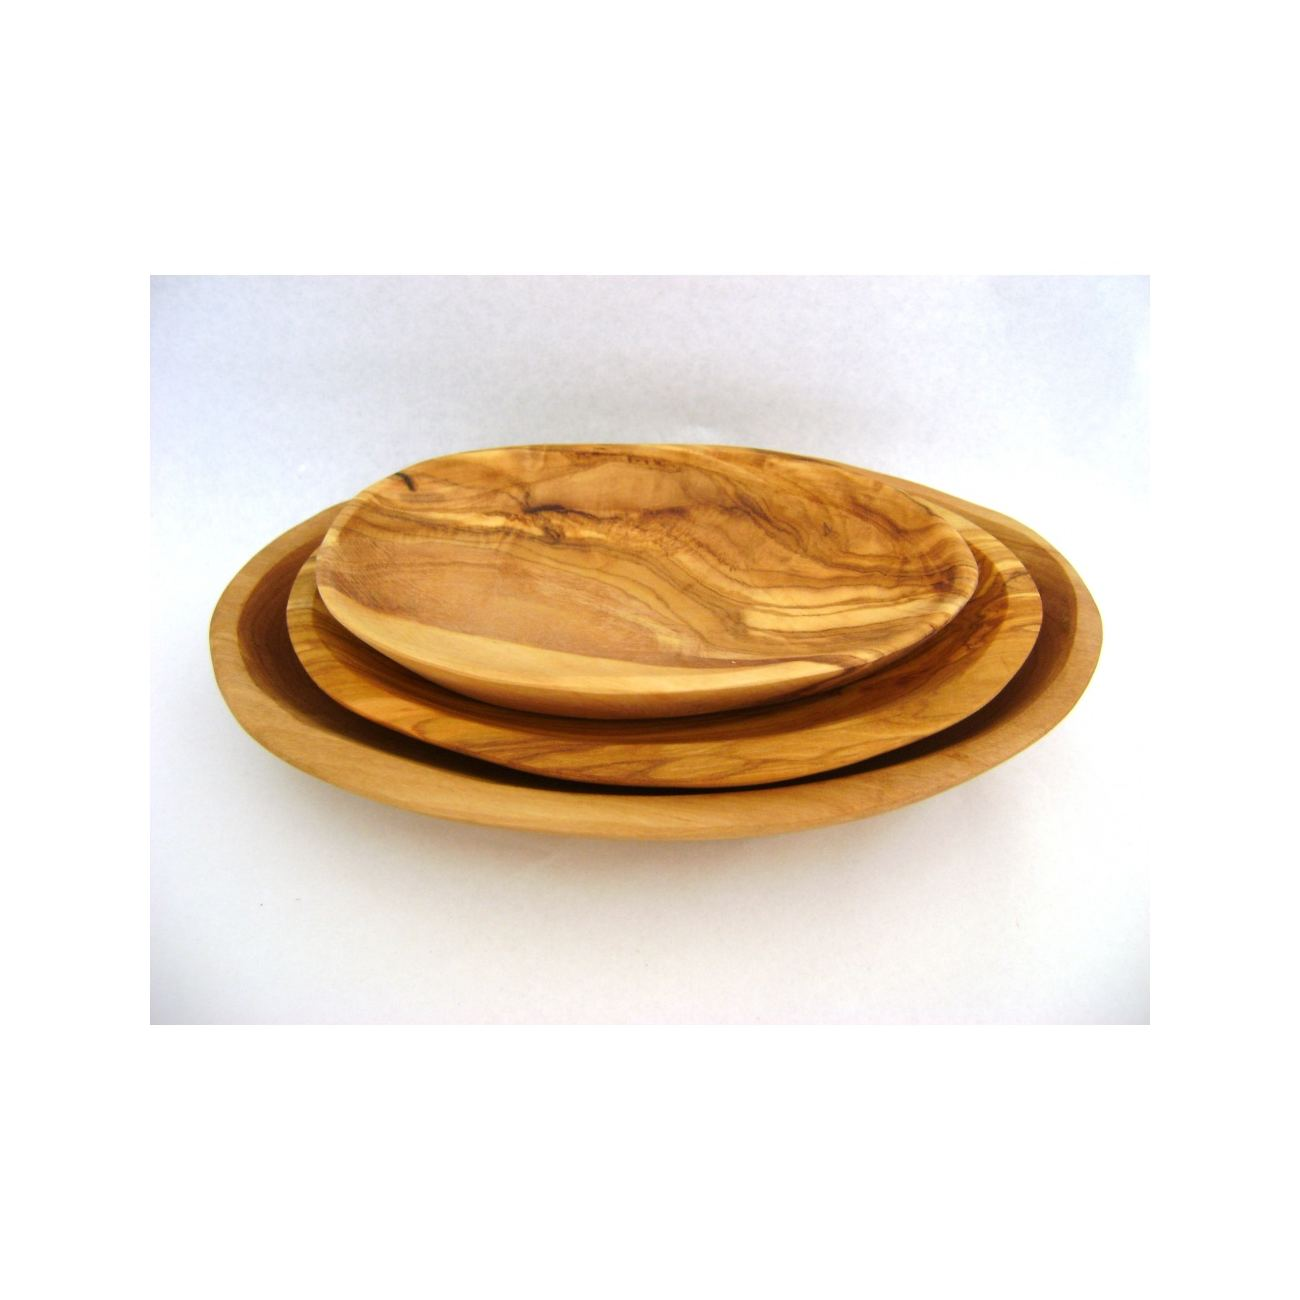 Olive Wood Serving Dishes or Plates Set of 3 - Handmade Oval Shape Kitchen Accessories  sc 1 st  Elite Crafters & Olive Wood Serving Dishes or Plates Set of 3 - Handmade Oval Shape ...